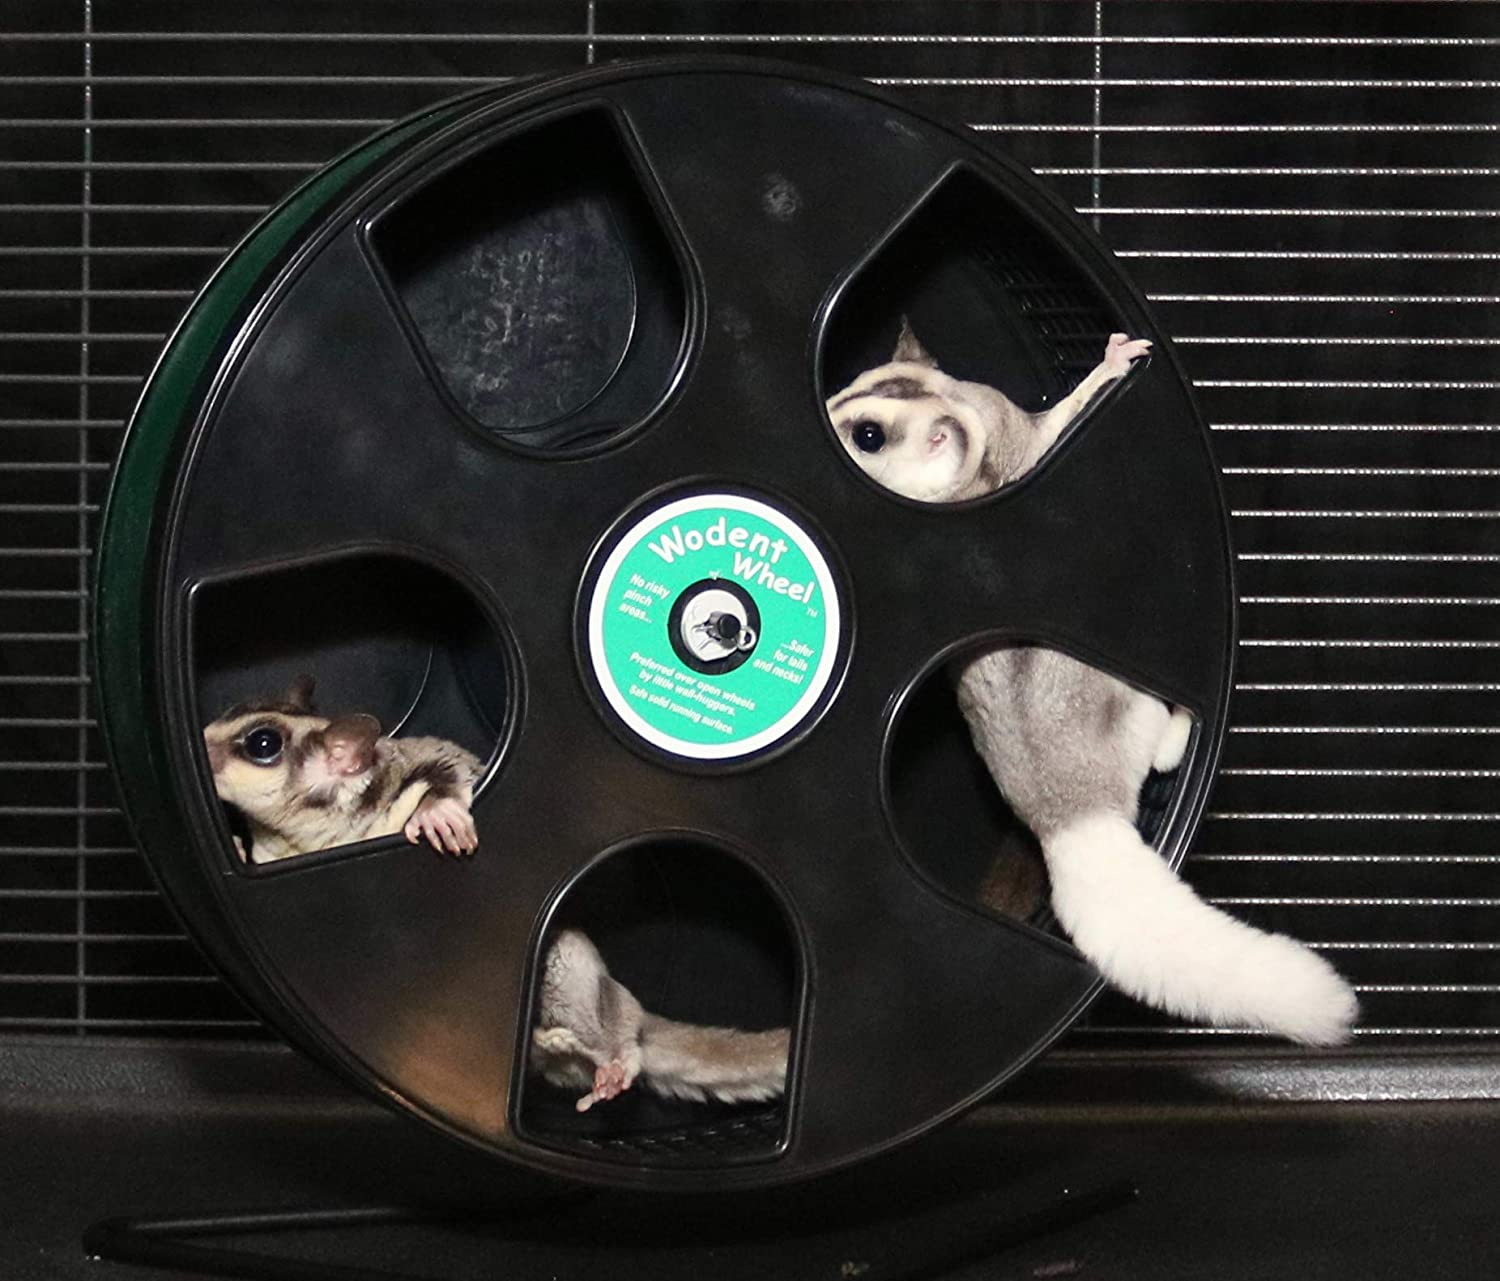 With Nail Trimming Inserts Sugar Glider Wheel Baby Raptor 9.5